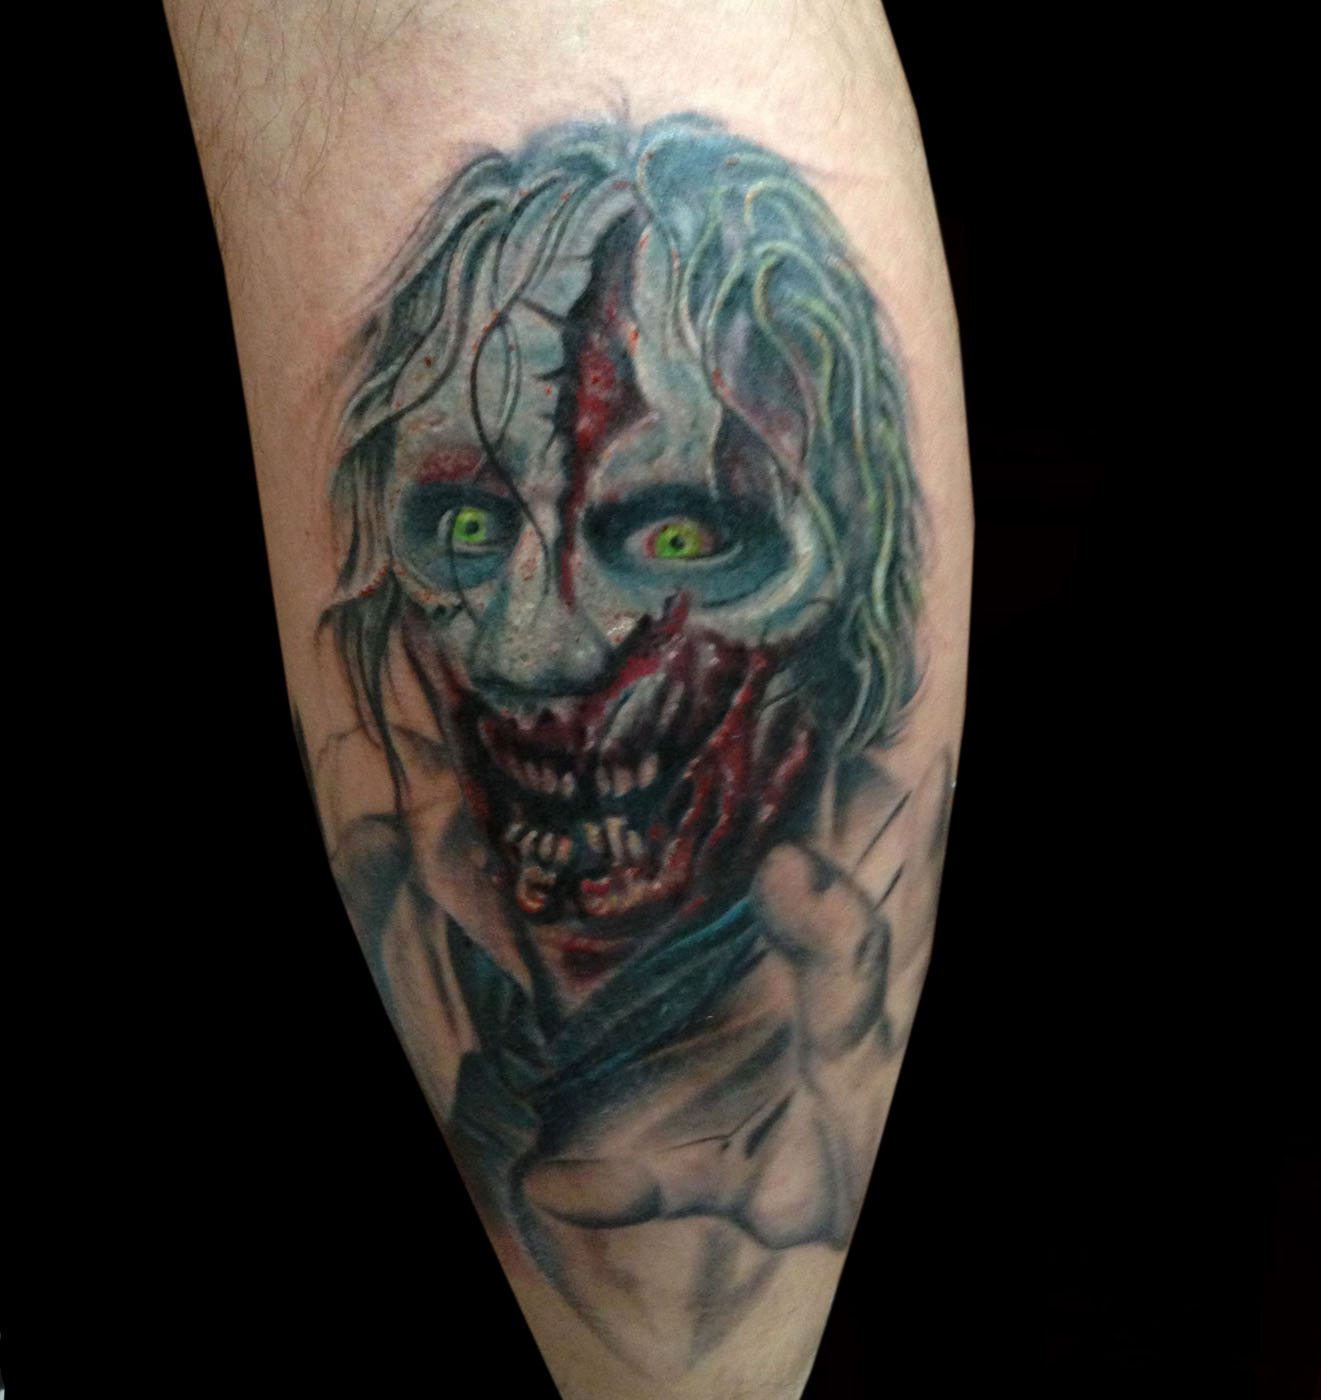 Darkhorror Realisticrealism Tattoo Slave To The Needle